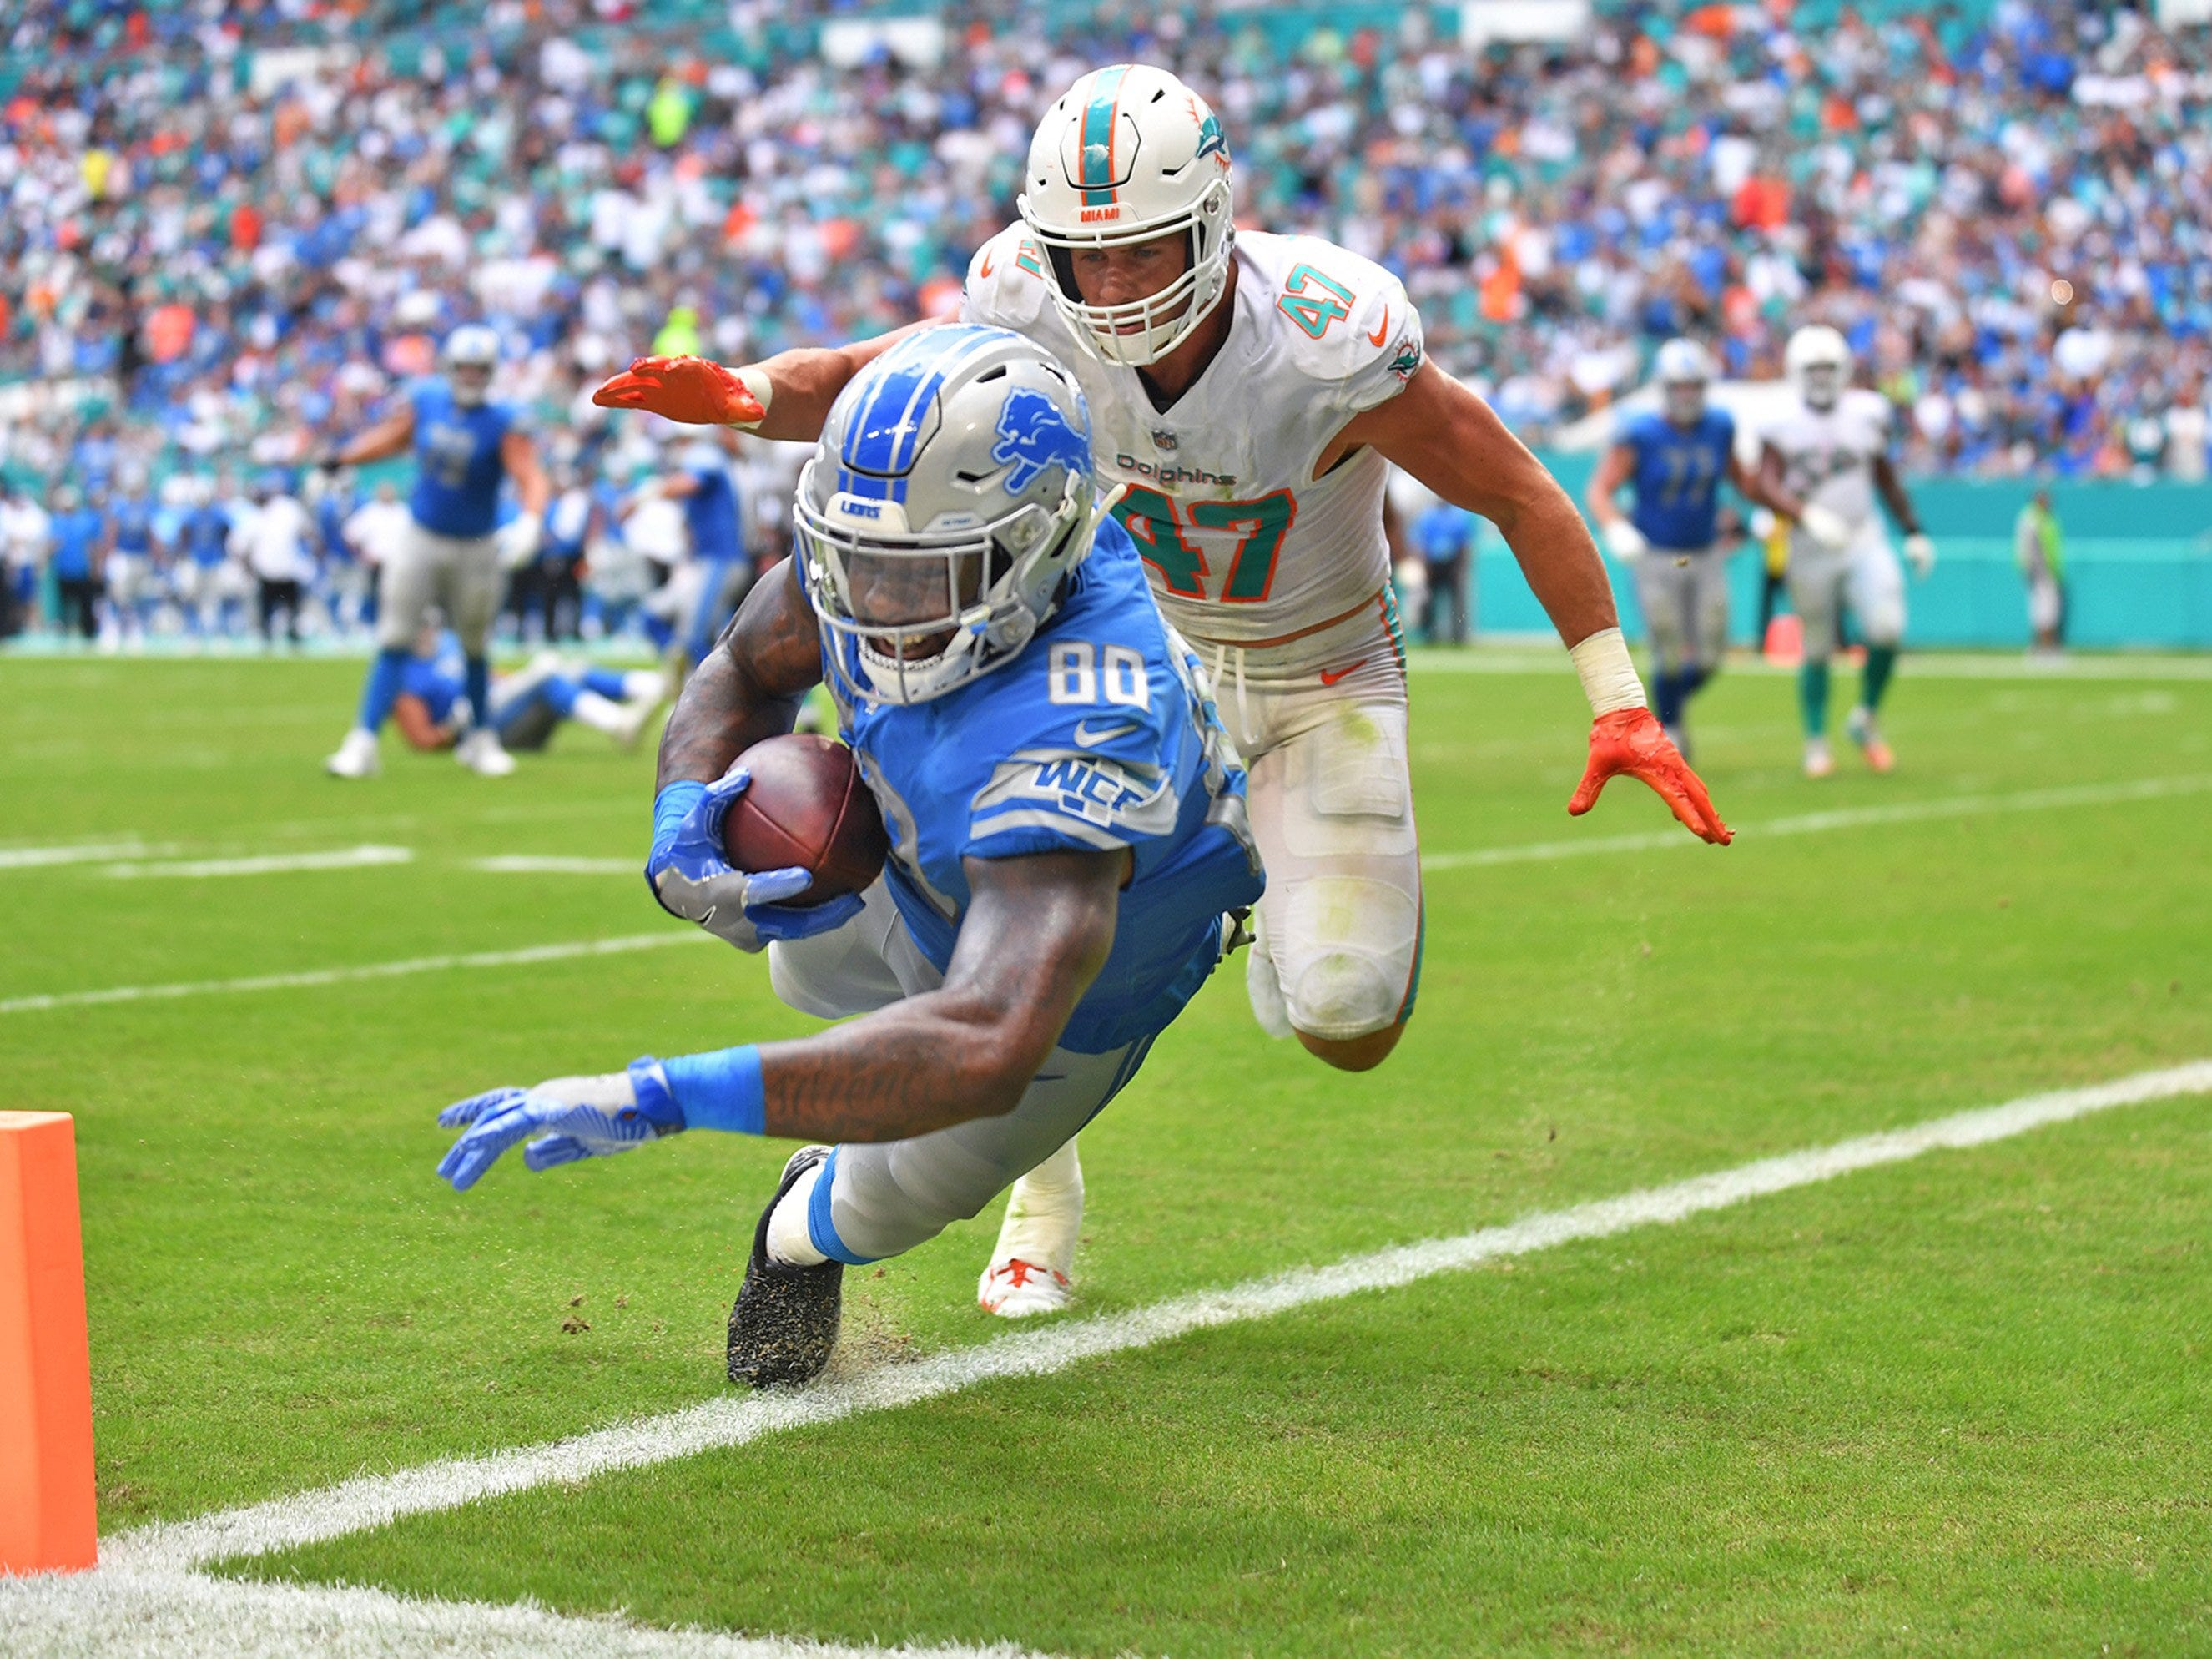 Lions tight end Michael Roberts scores a touchdown past Dolphins linebacker Kiko Alonso during the Lions' 32-21 win on Sunday, Oct. 21, 2018, in Miami Gardens, Fla.